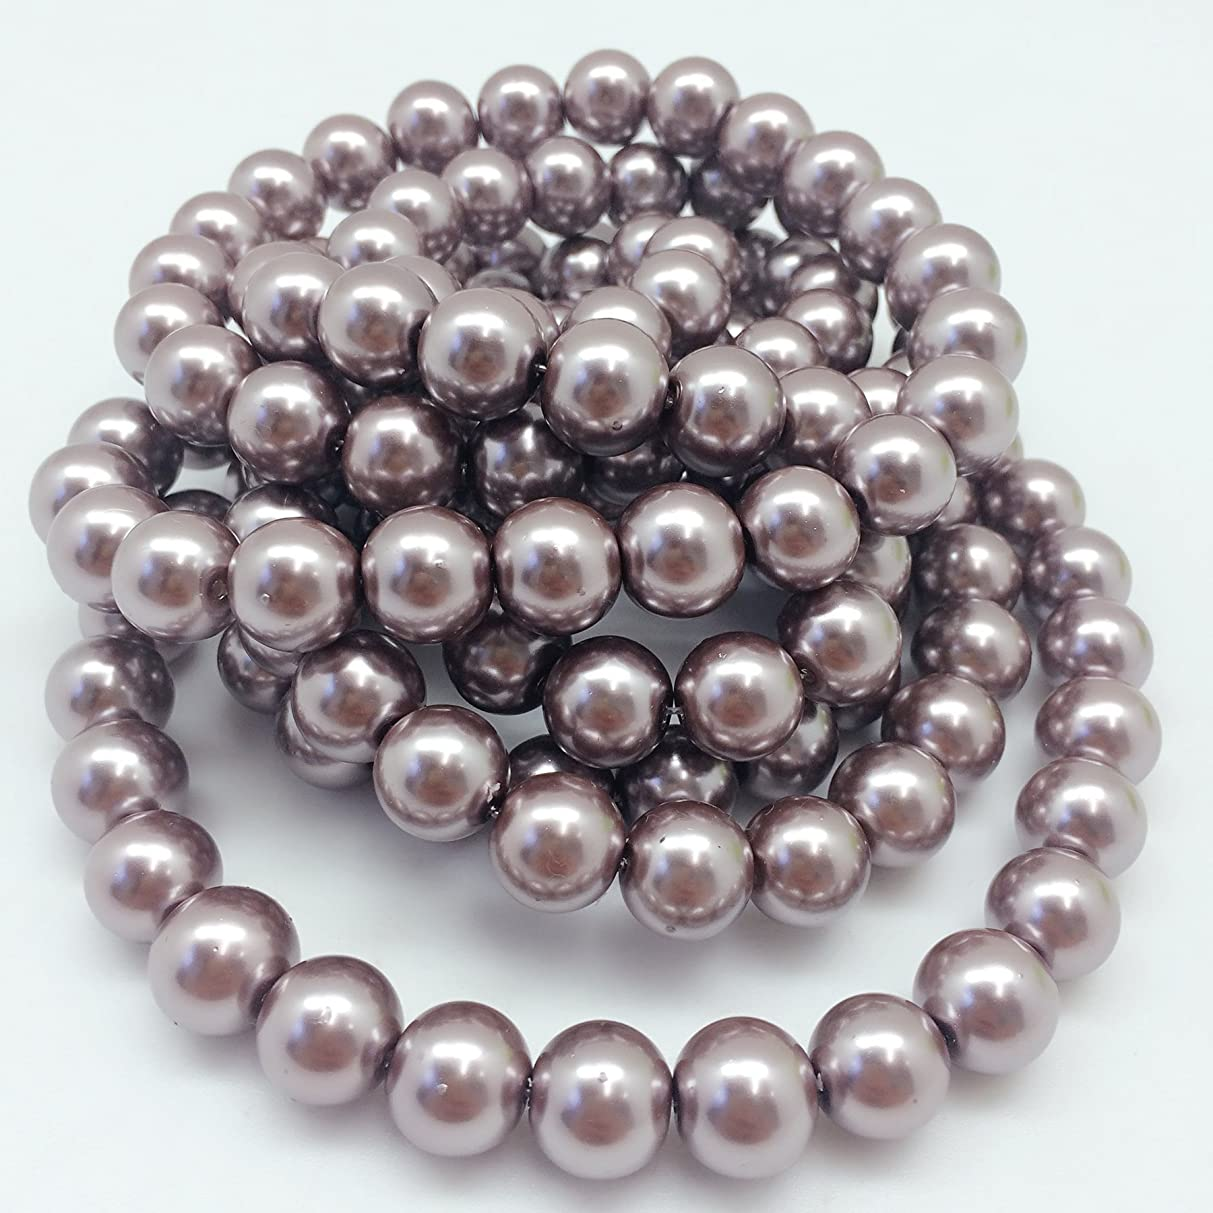 PEPPERLONELY Brand 2 Strands (About 140 PC, 320Grams) Rosy Brown Glass Pearl Round Beads, 12mm(1/2 Inch)